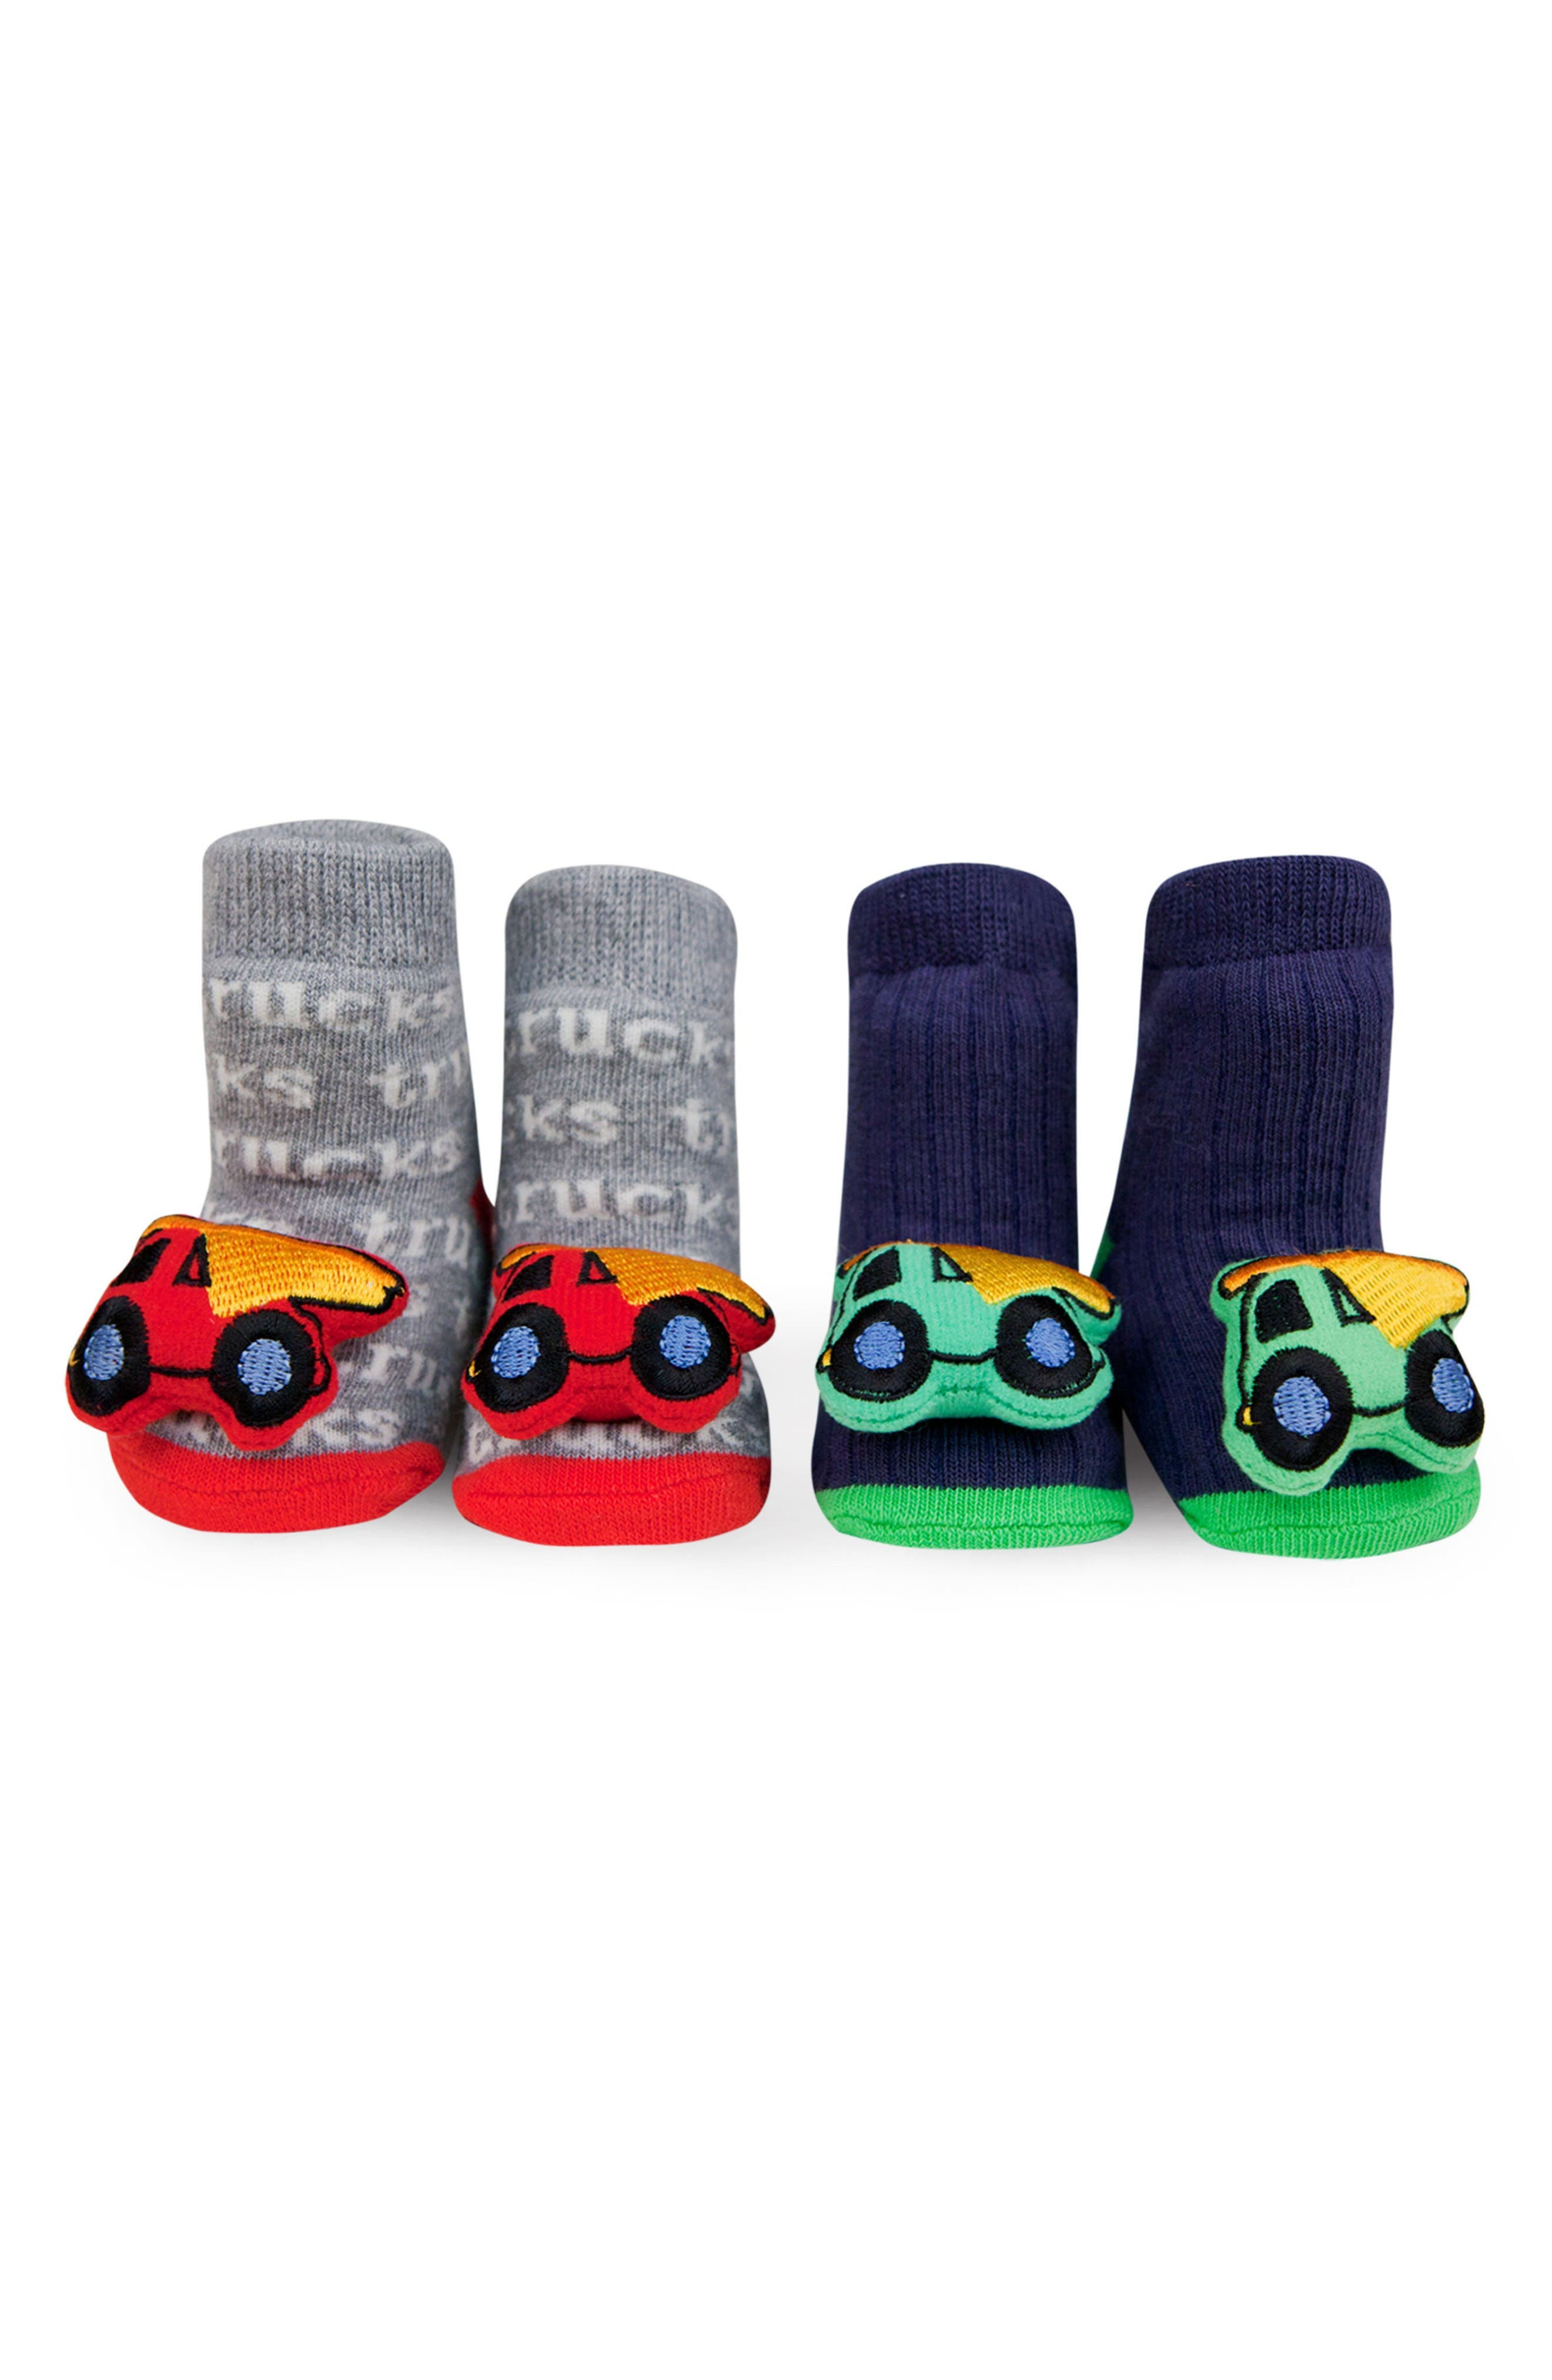 & Friends 2-Pack Vehicle Rattle Socks,                         Main,                         color, Red/ Blue